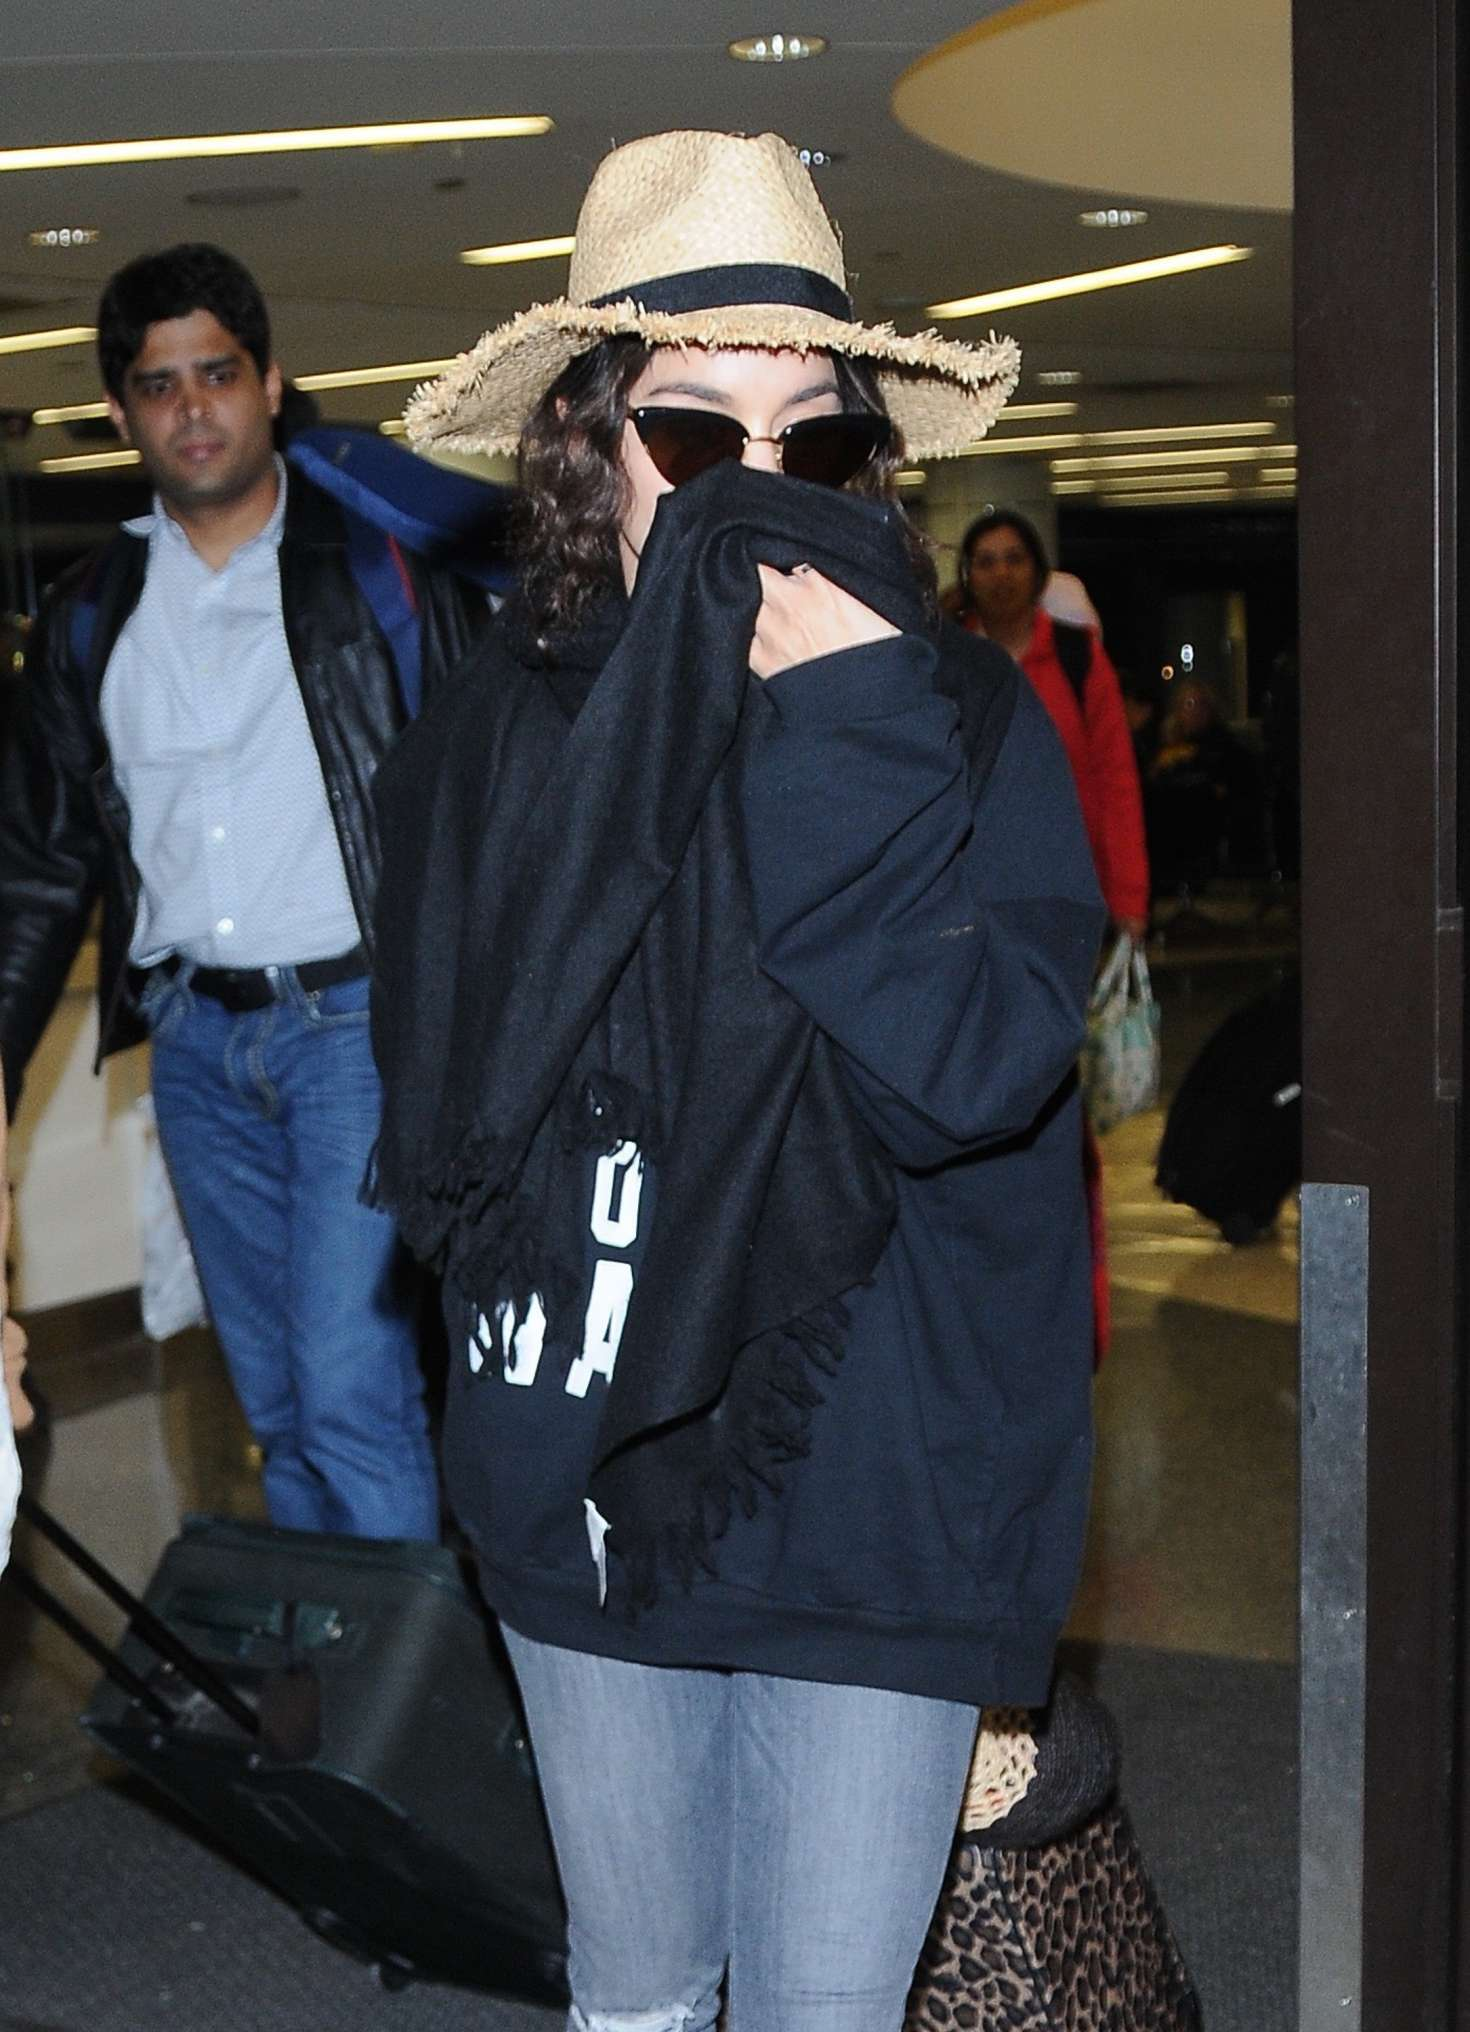 Vanessa Hudgens in Jeans at LAX airport in Los Angeles